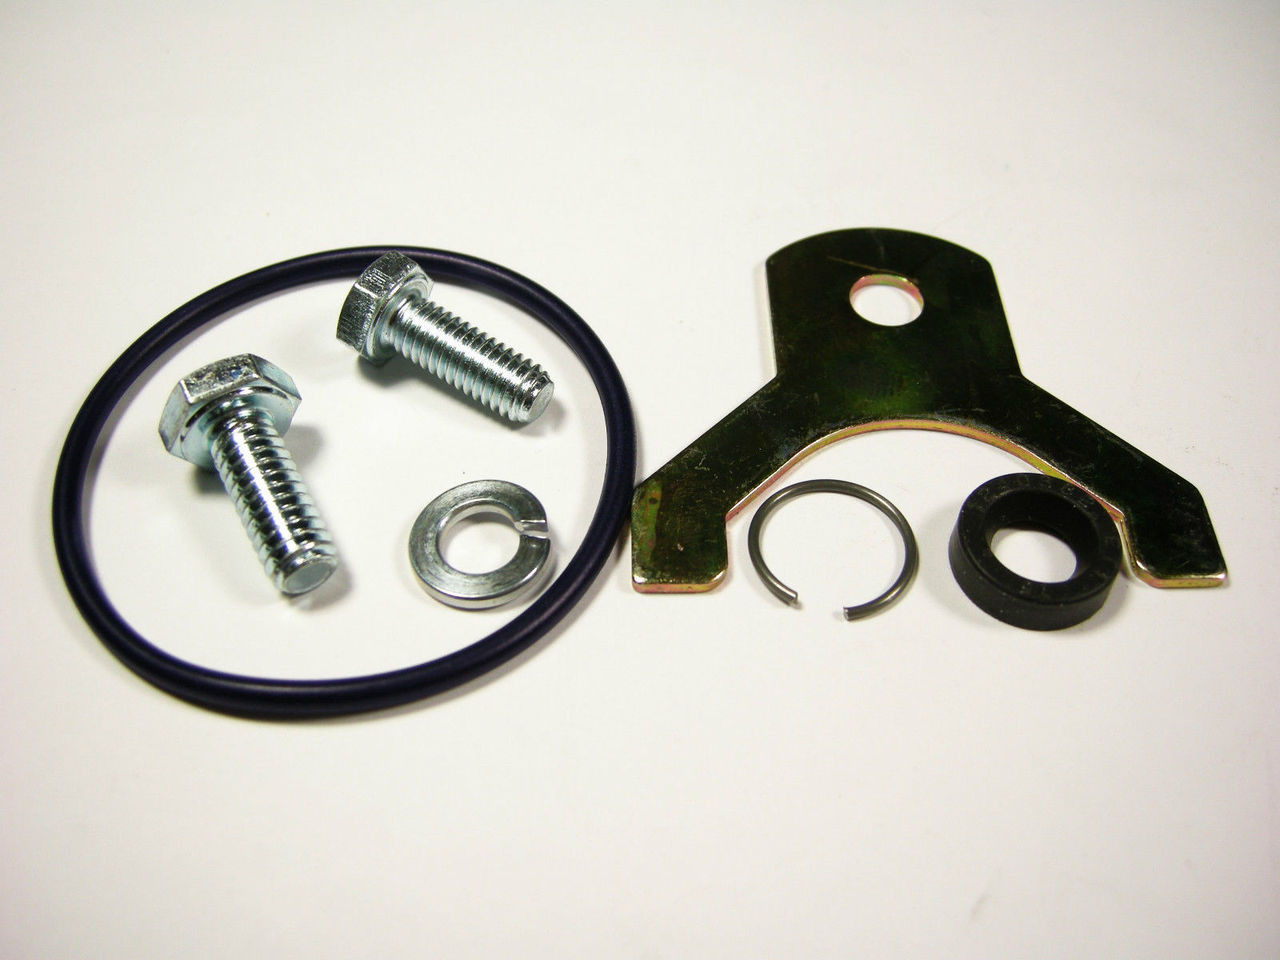 TH350 COMPLETE Speedo Gear Housing LEAK STOP SEAL KIT Speedometer